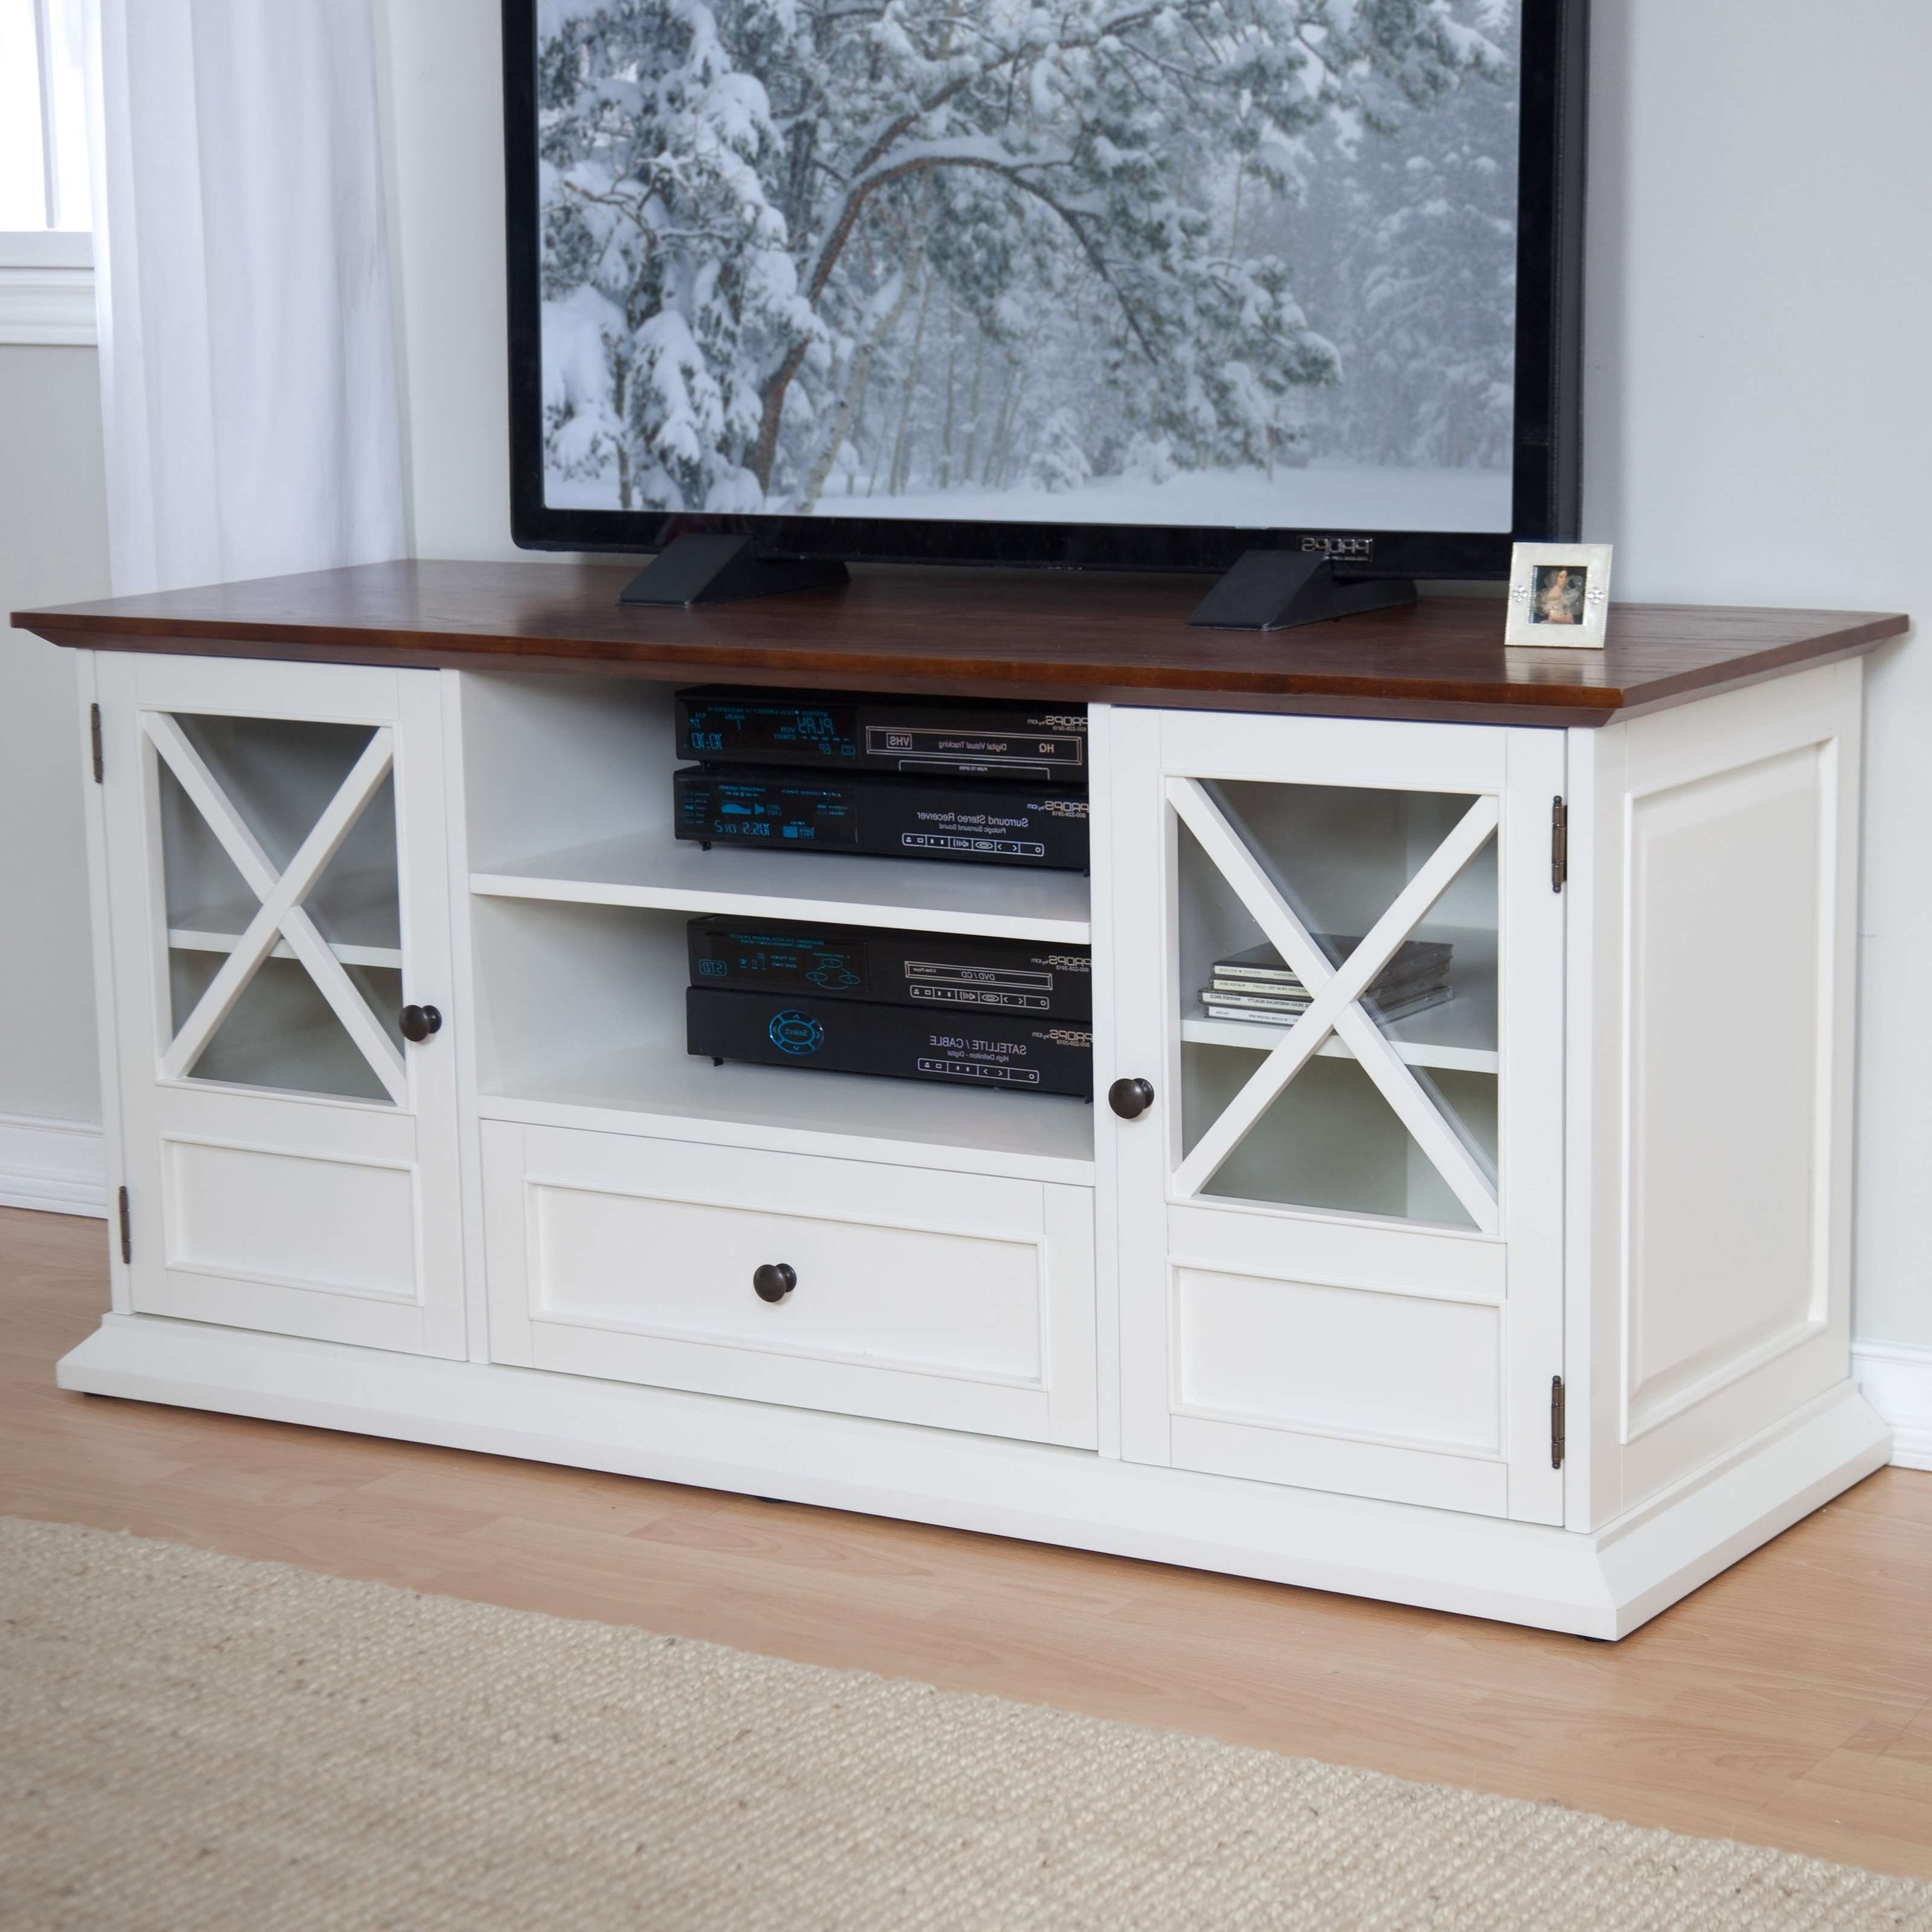 Tv : Exquisite 65 Inch Tv Stands With Integrated Mount Interesting For 65 Inch Tv Stands With Integrated Mount (View 2 of 15)